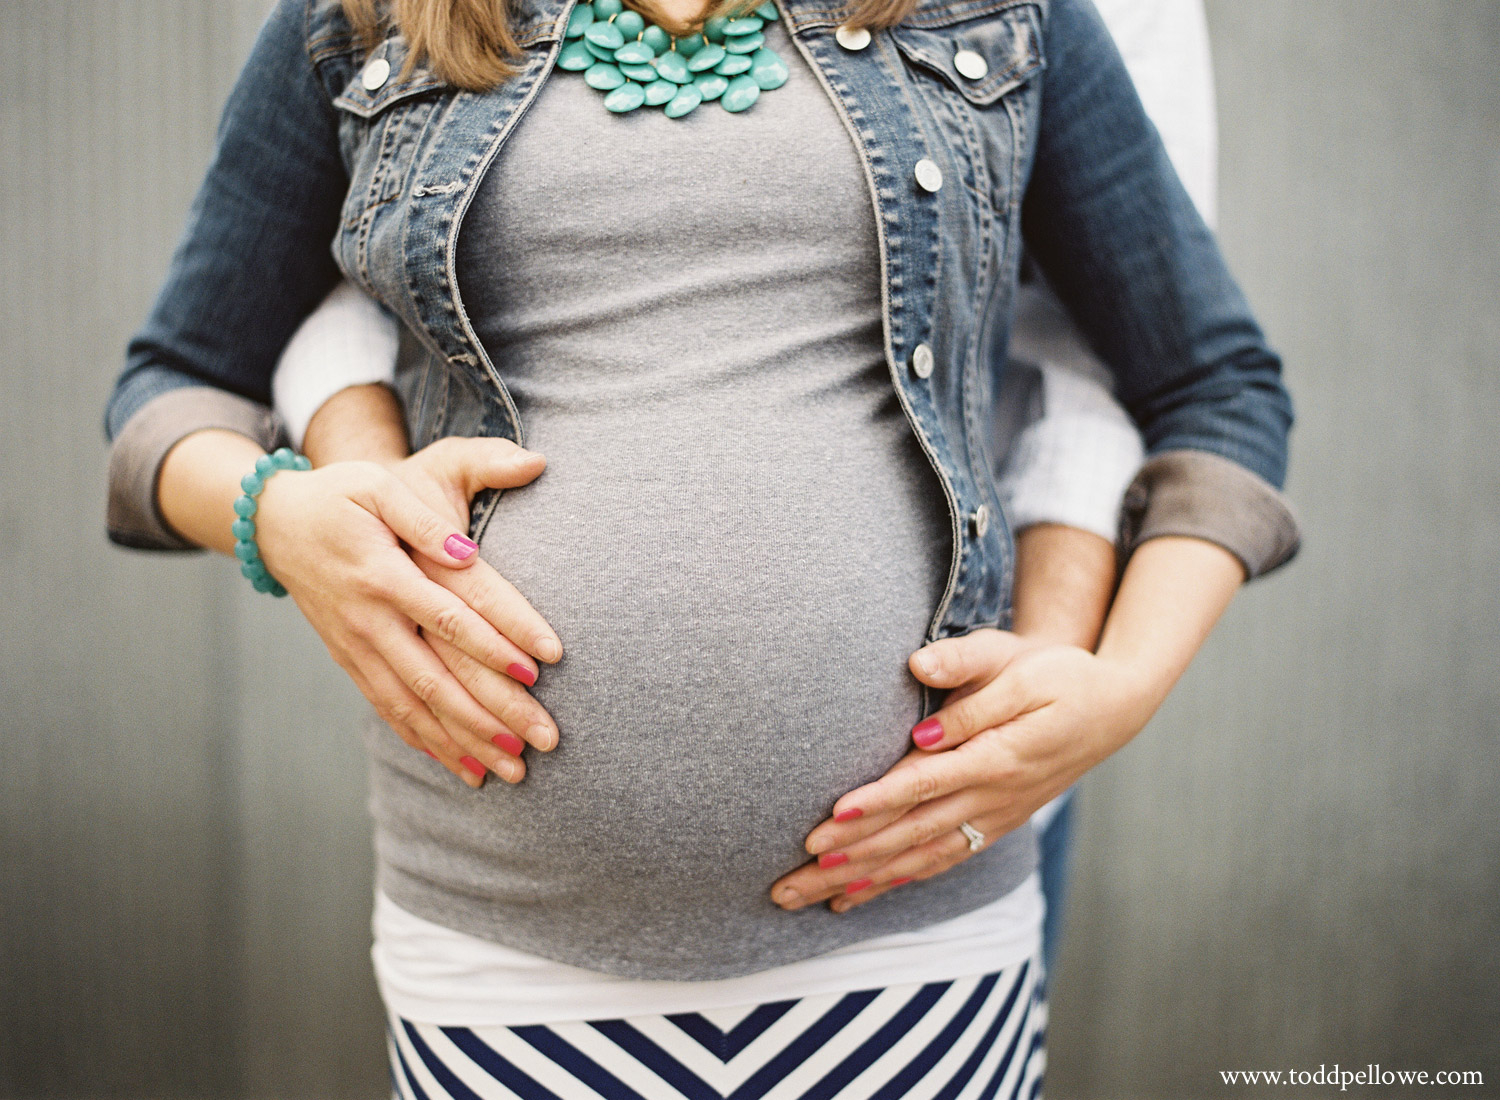 04-louisville_maternity_photographer-007.jpg